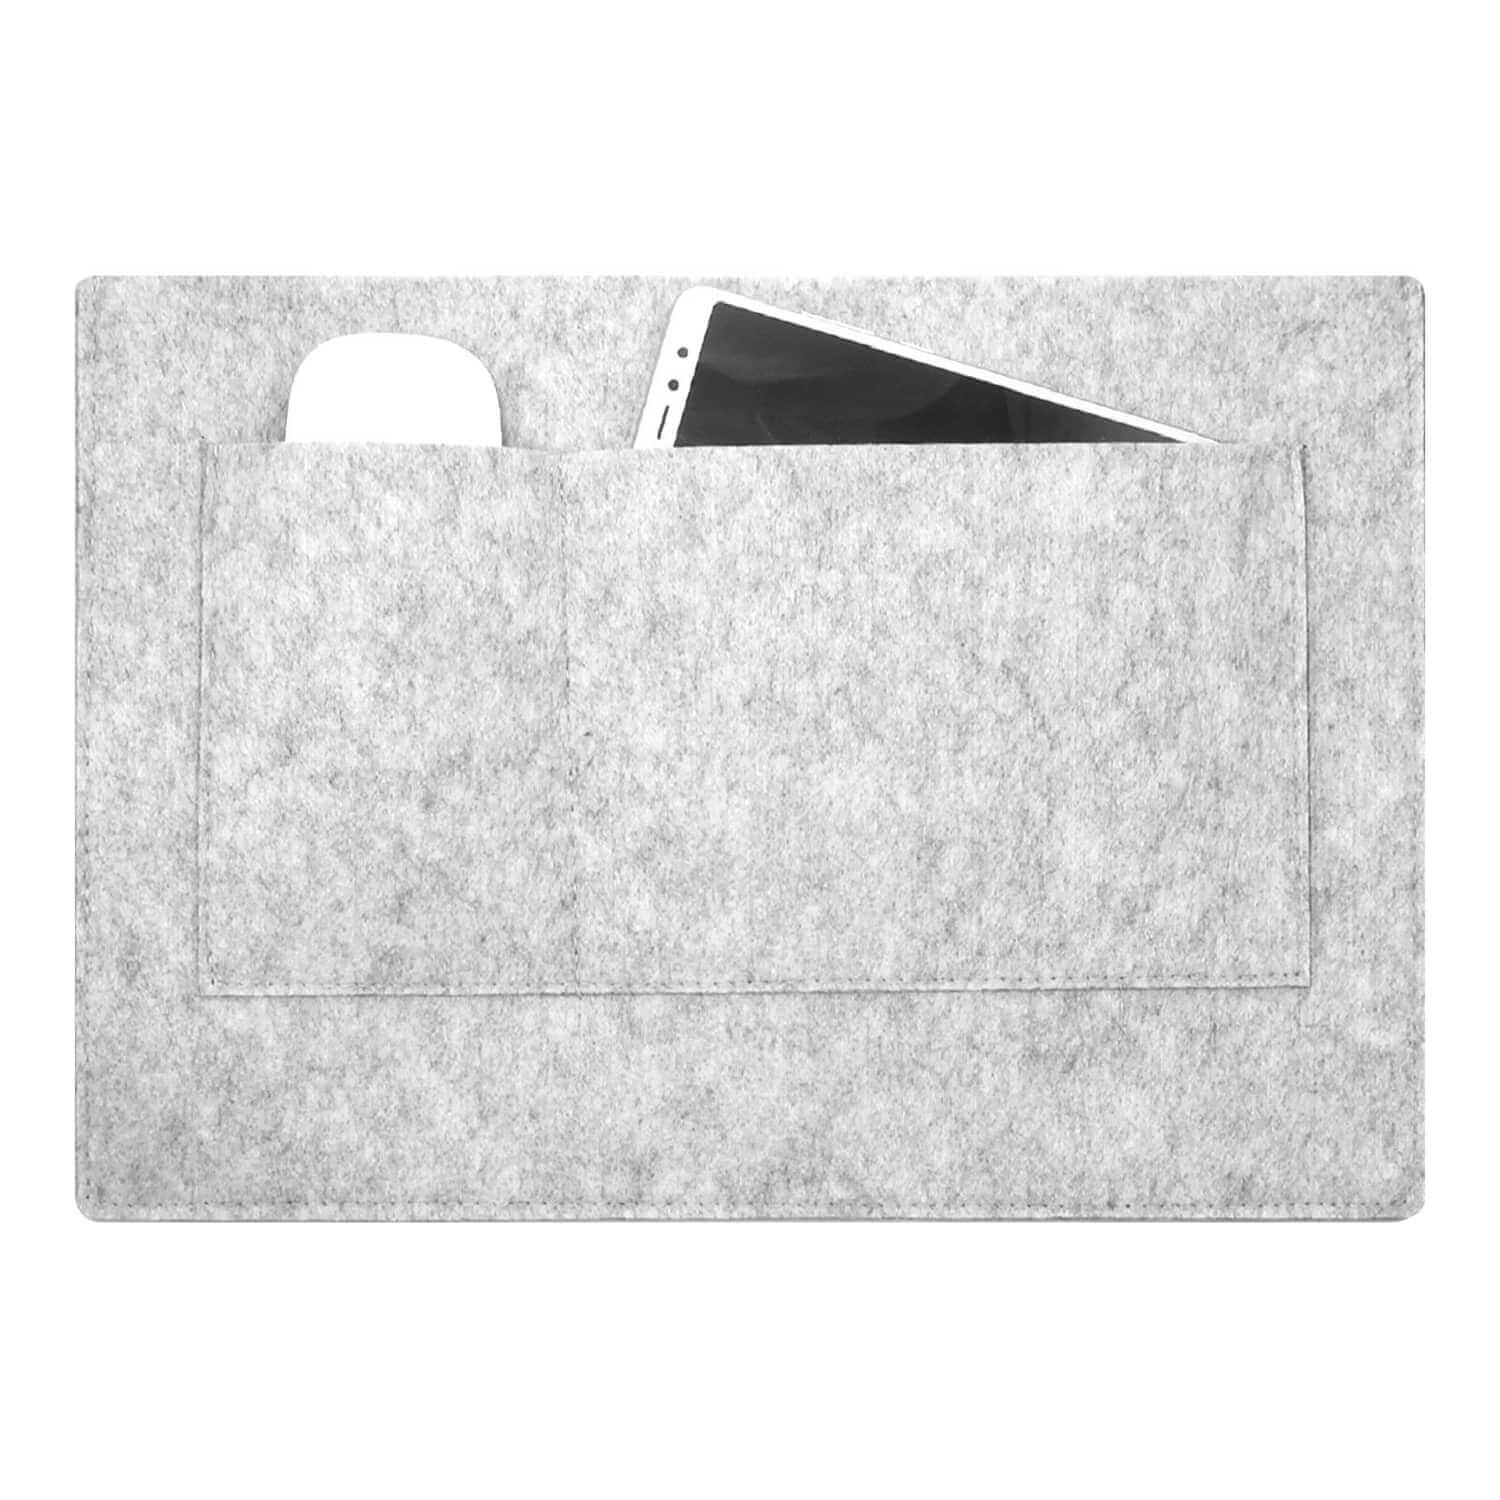 Felt case Laptop - business grey 3